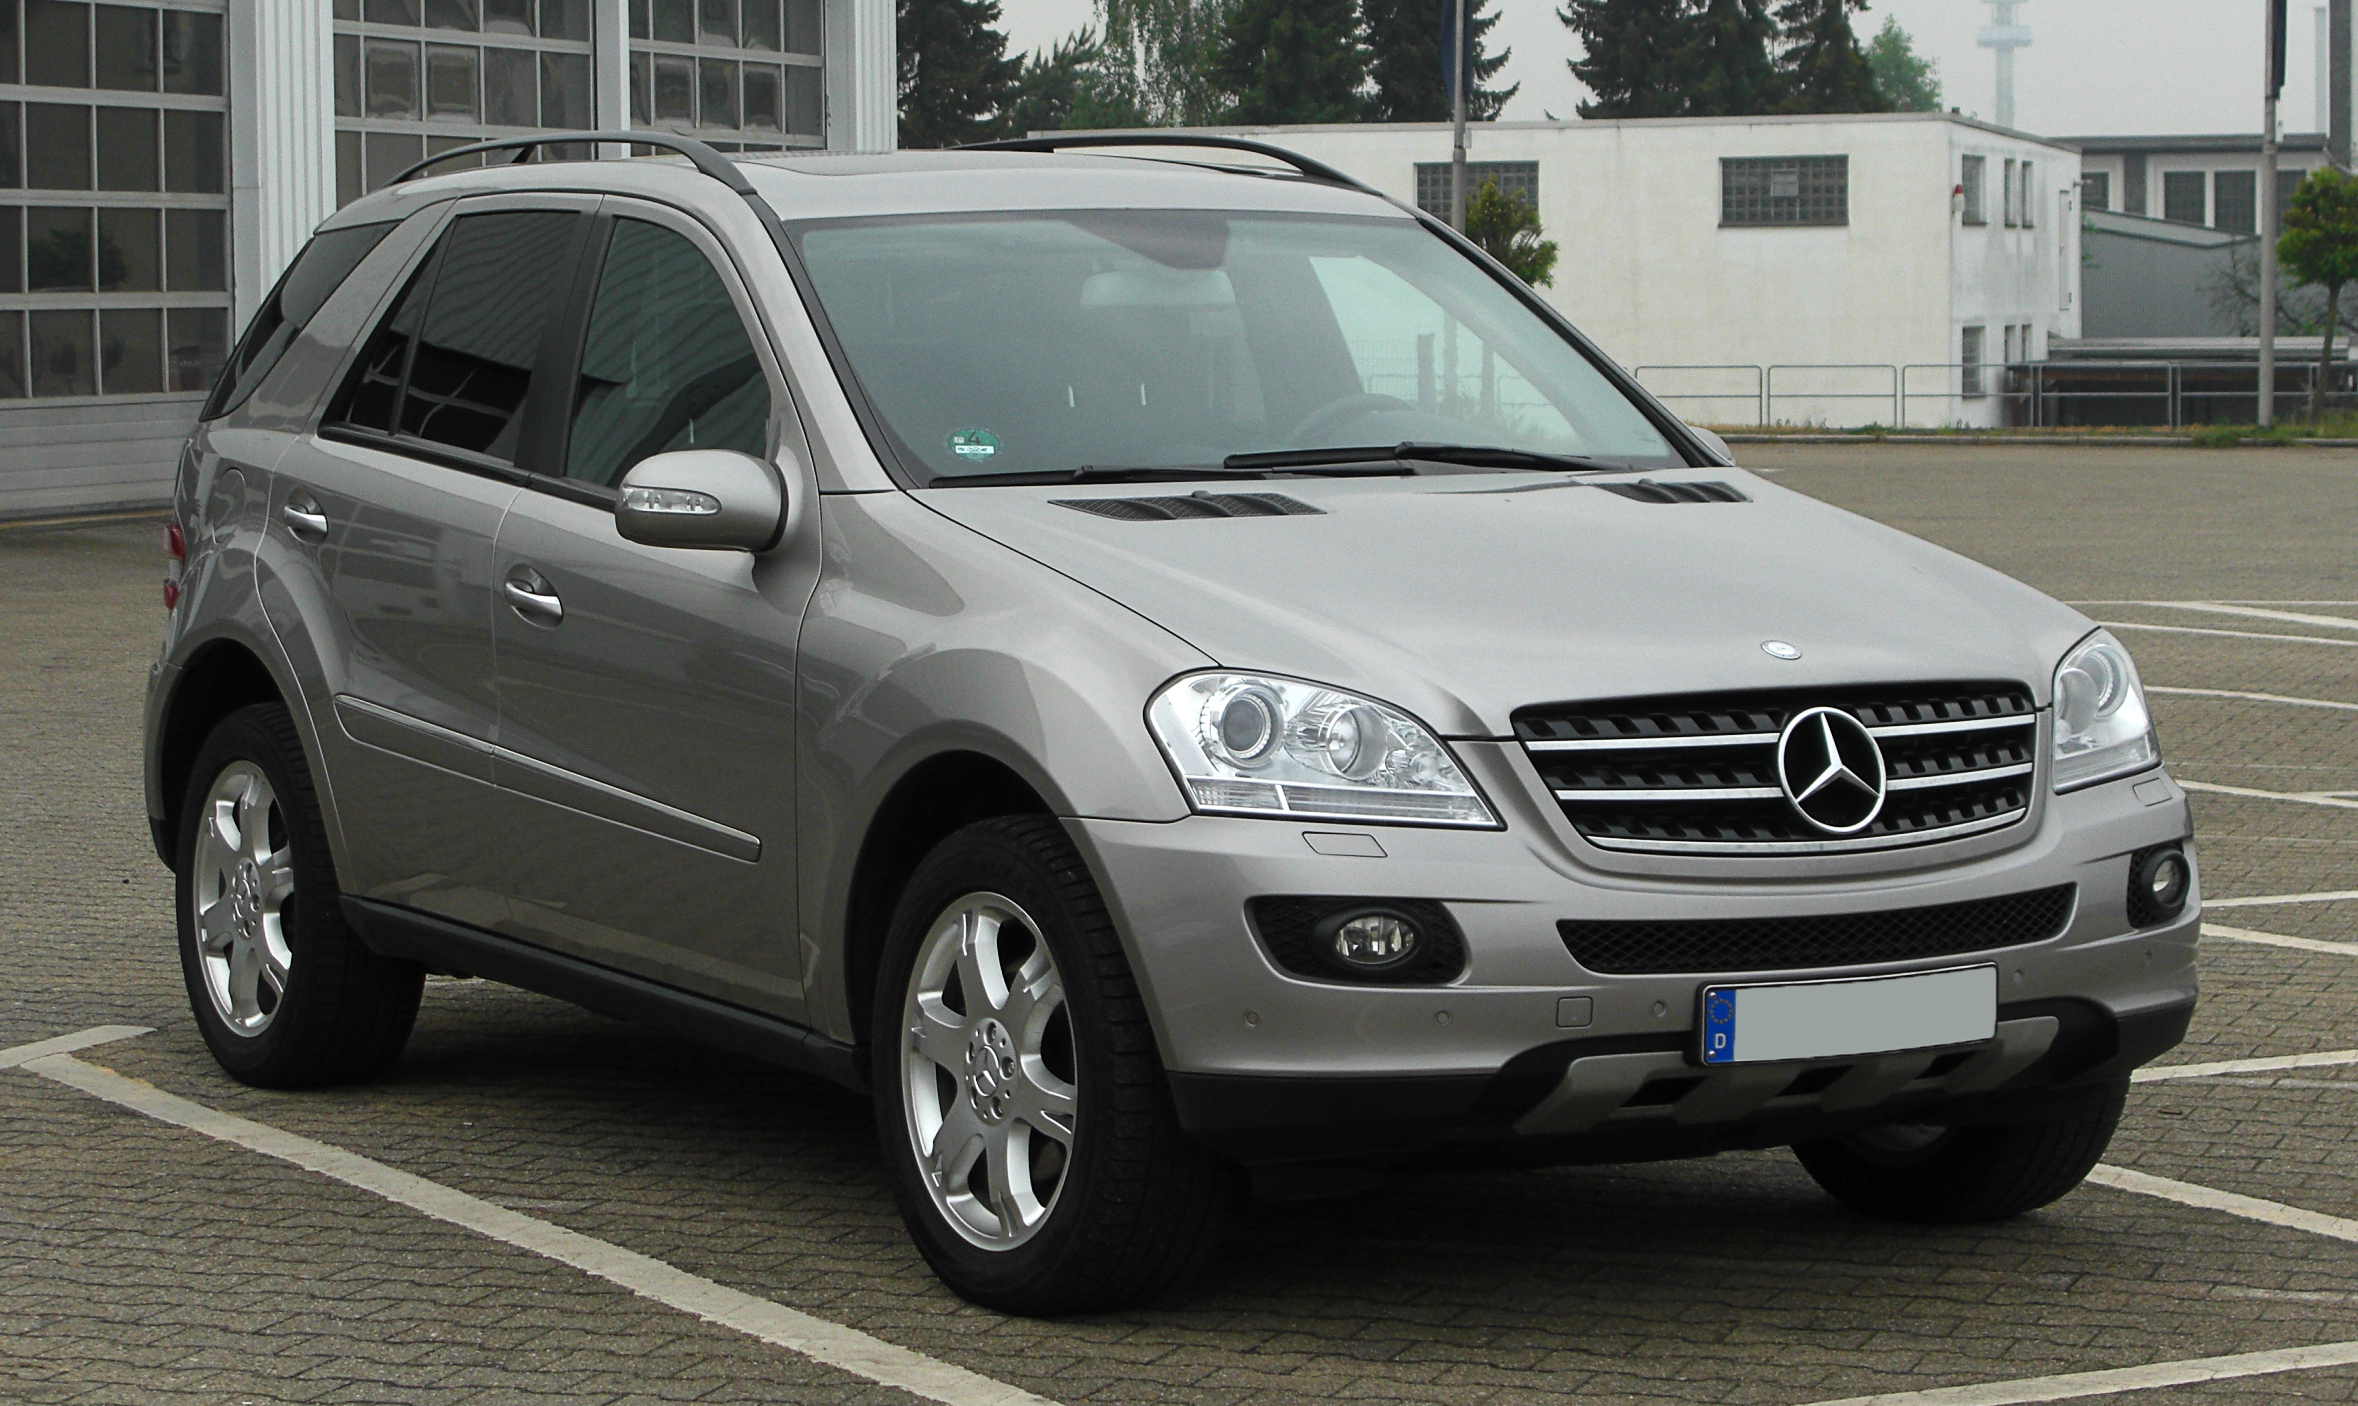 mercedes benz ml 320 cdi technical details history. Black Bedroom Furniture Sets. Home Design Ideas